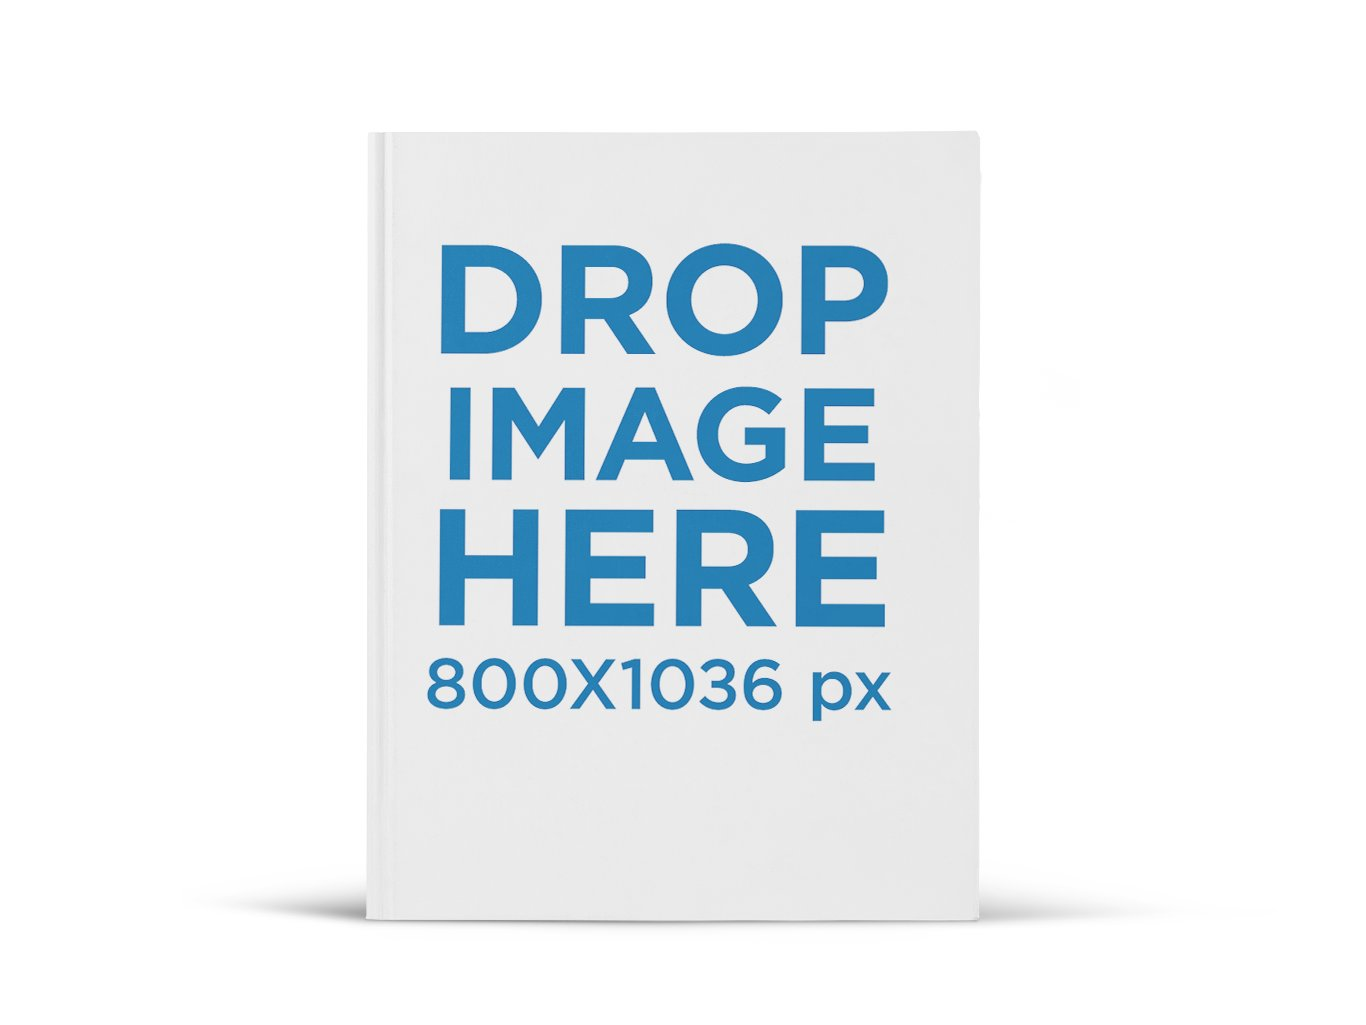 Hardcover Ebook Mockup Standing Over a Flat Surface - Book Drop PNG